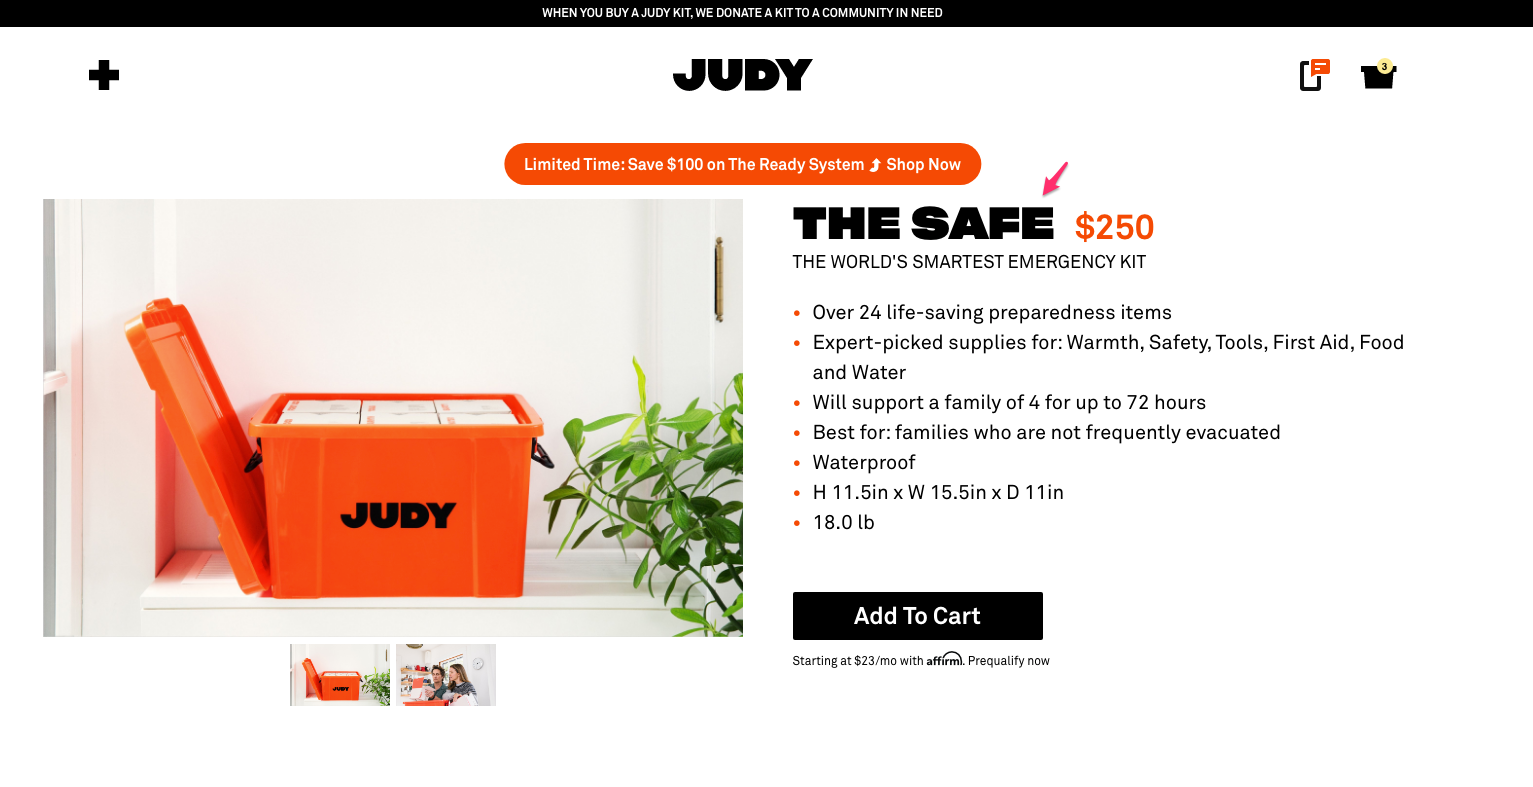 judy-product-title-optimization-shopping-feed